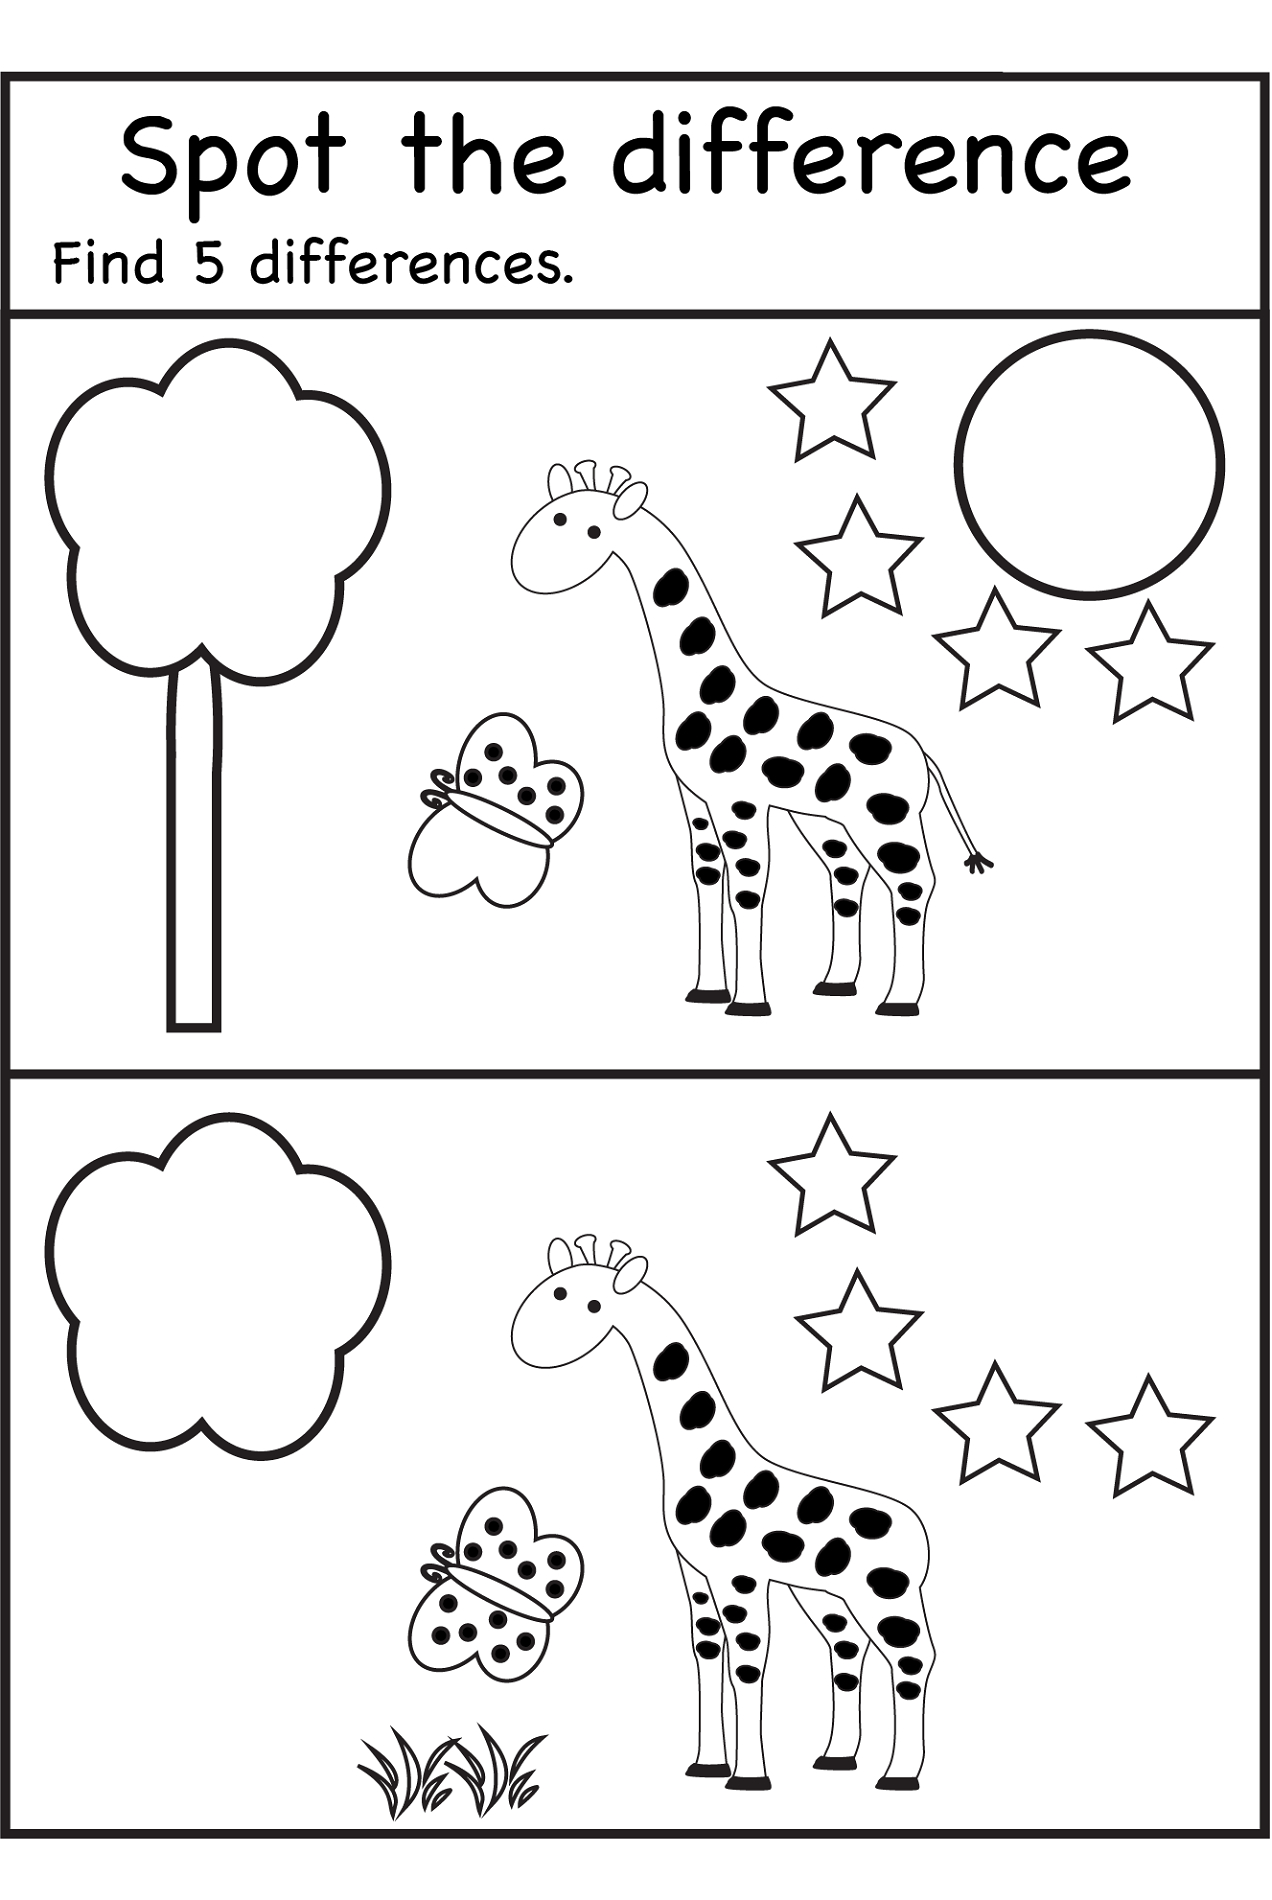 Spot The Difference Worksheets   Spot The Difference Printable - Free Printable Spot The Difference Worksheets